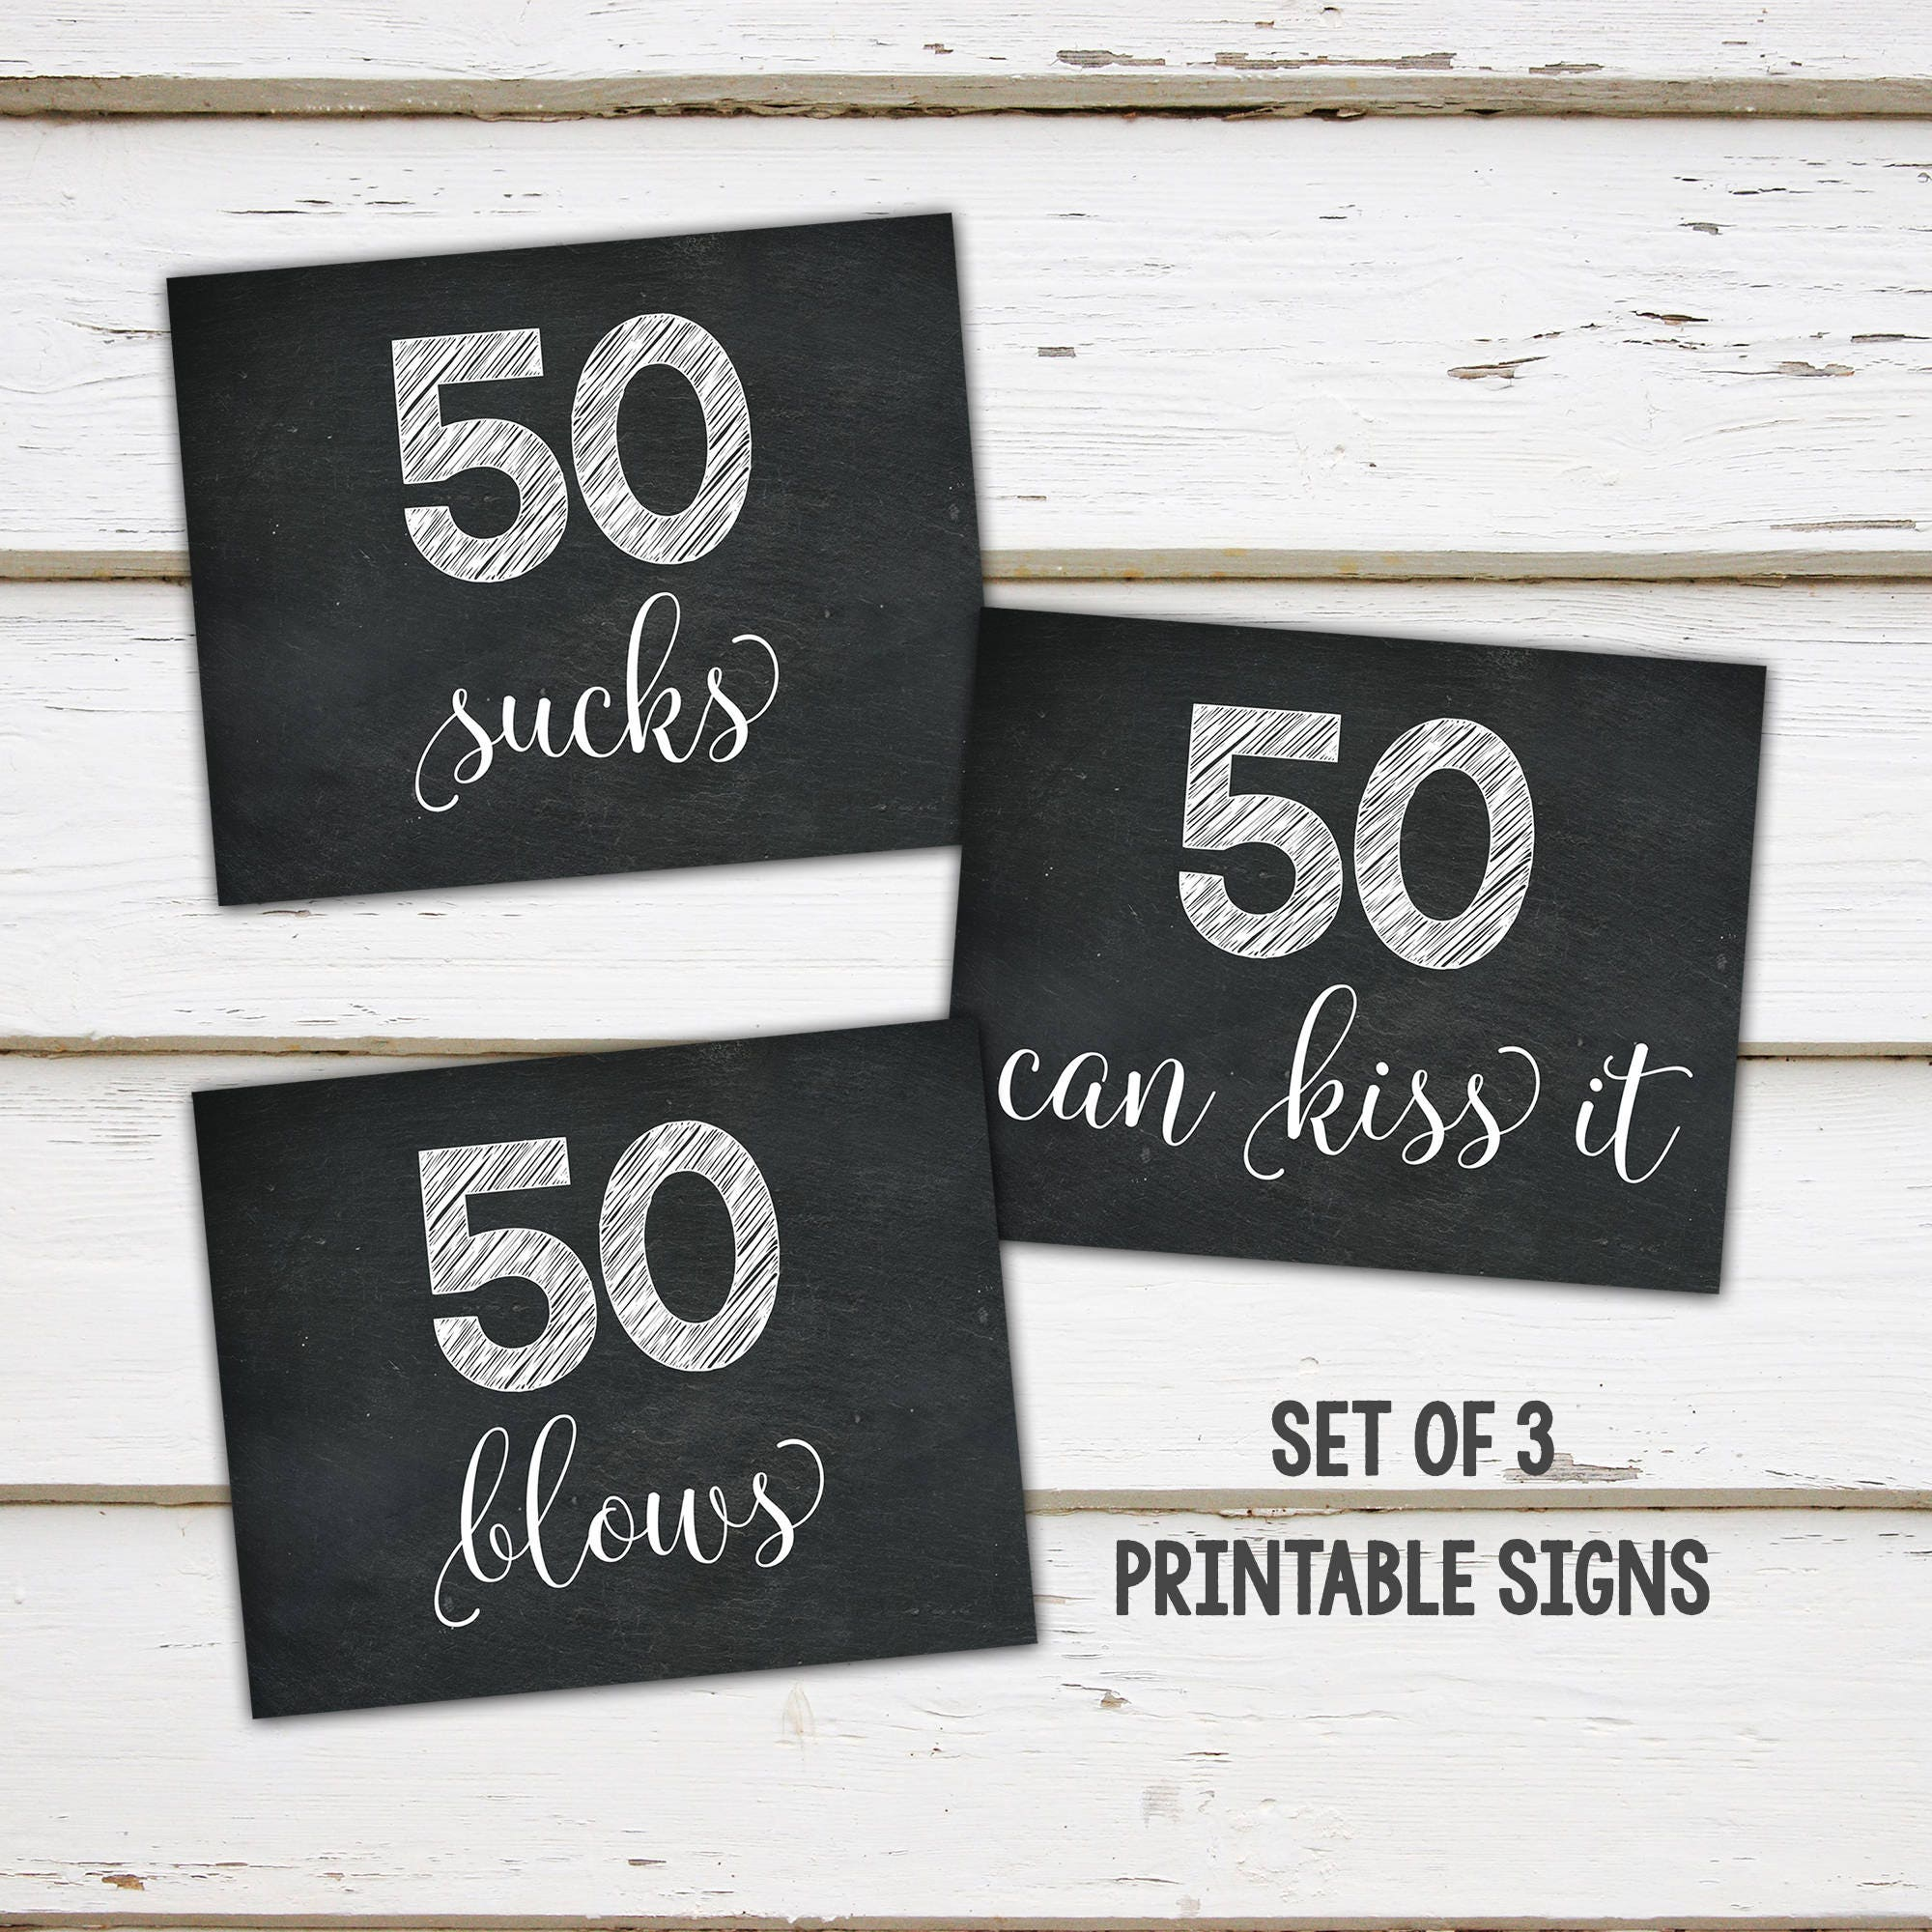 picture relating to 50th Birthday Signs Printable called Printable 50th Birthday Get together Decor Indications, 50 Sucks, 50 Blows, 50 Can Kiss It, Sweet Bar, Fast, Chalkboard Signs and symptoms, Humorous, In excess of Hill, MB284